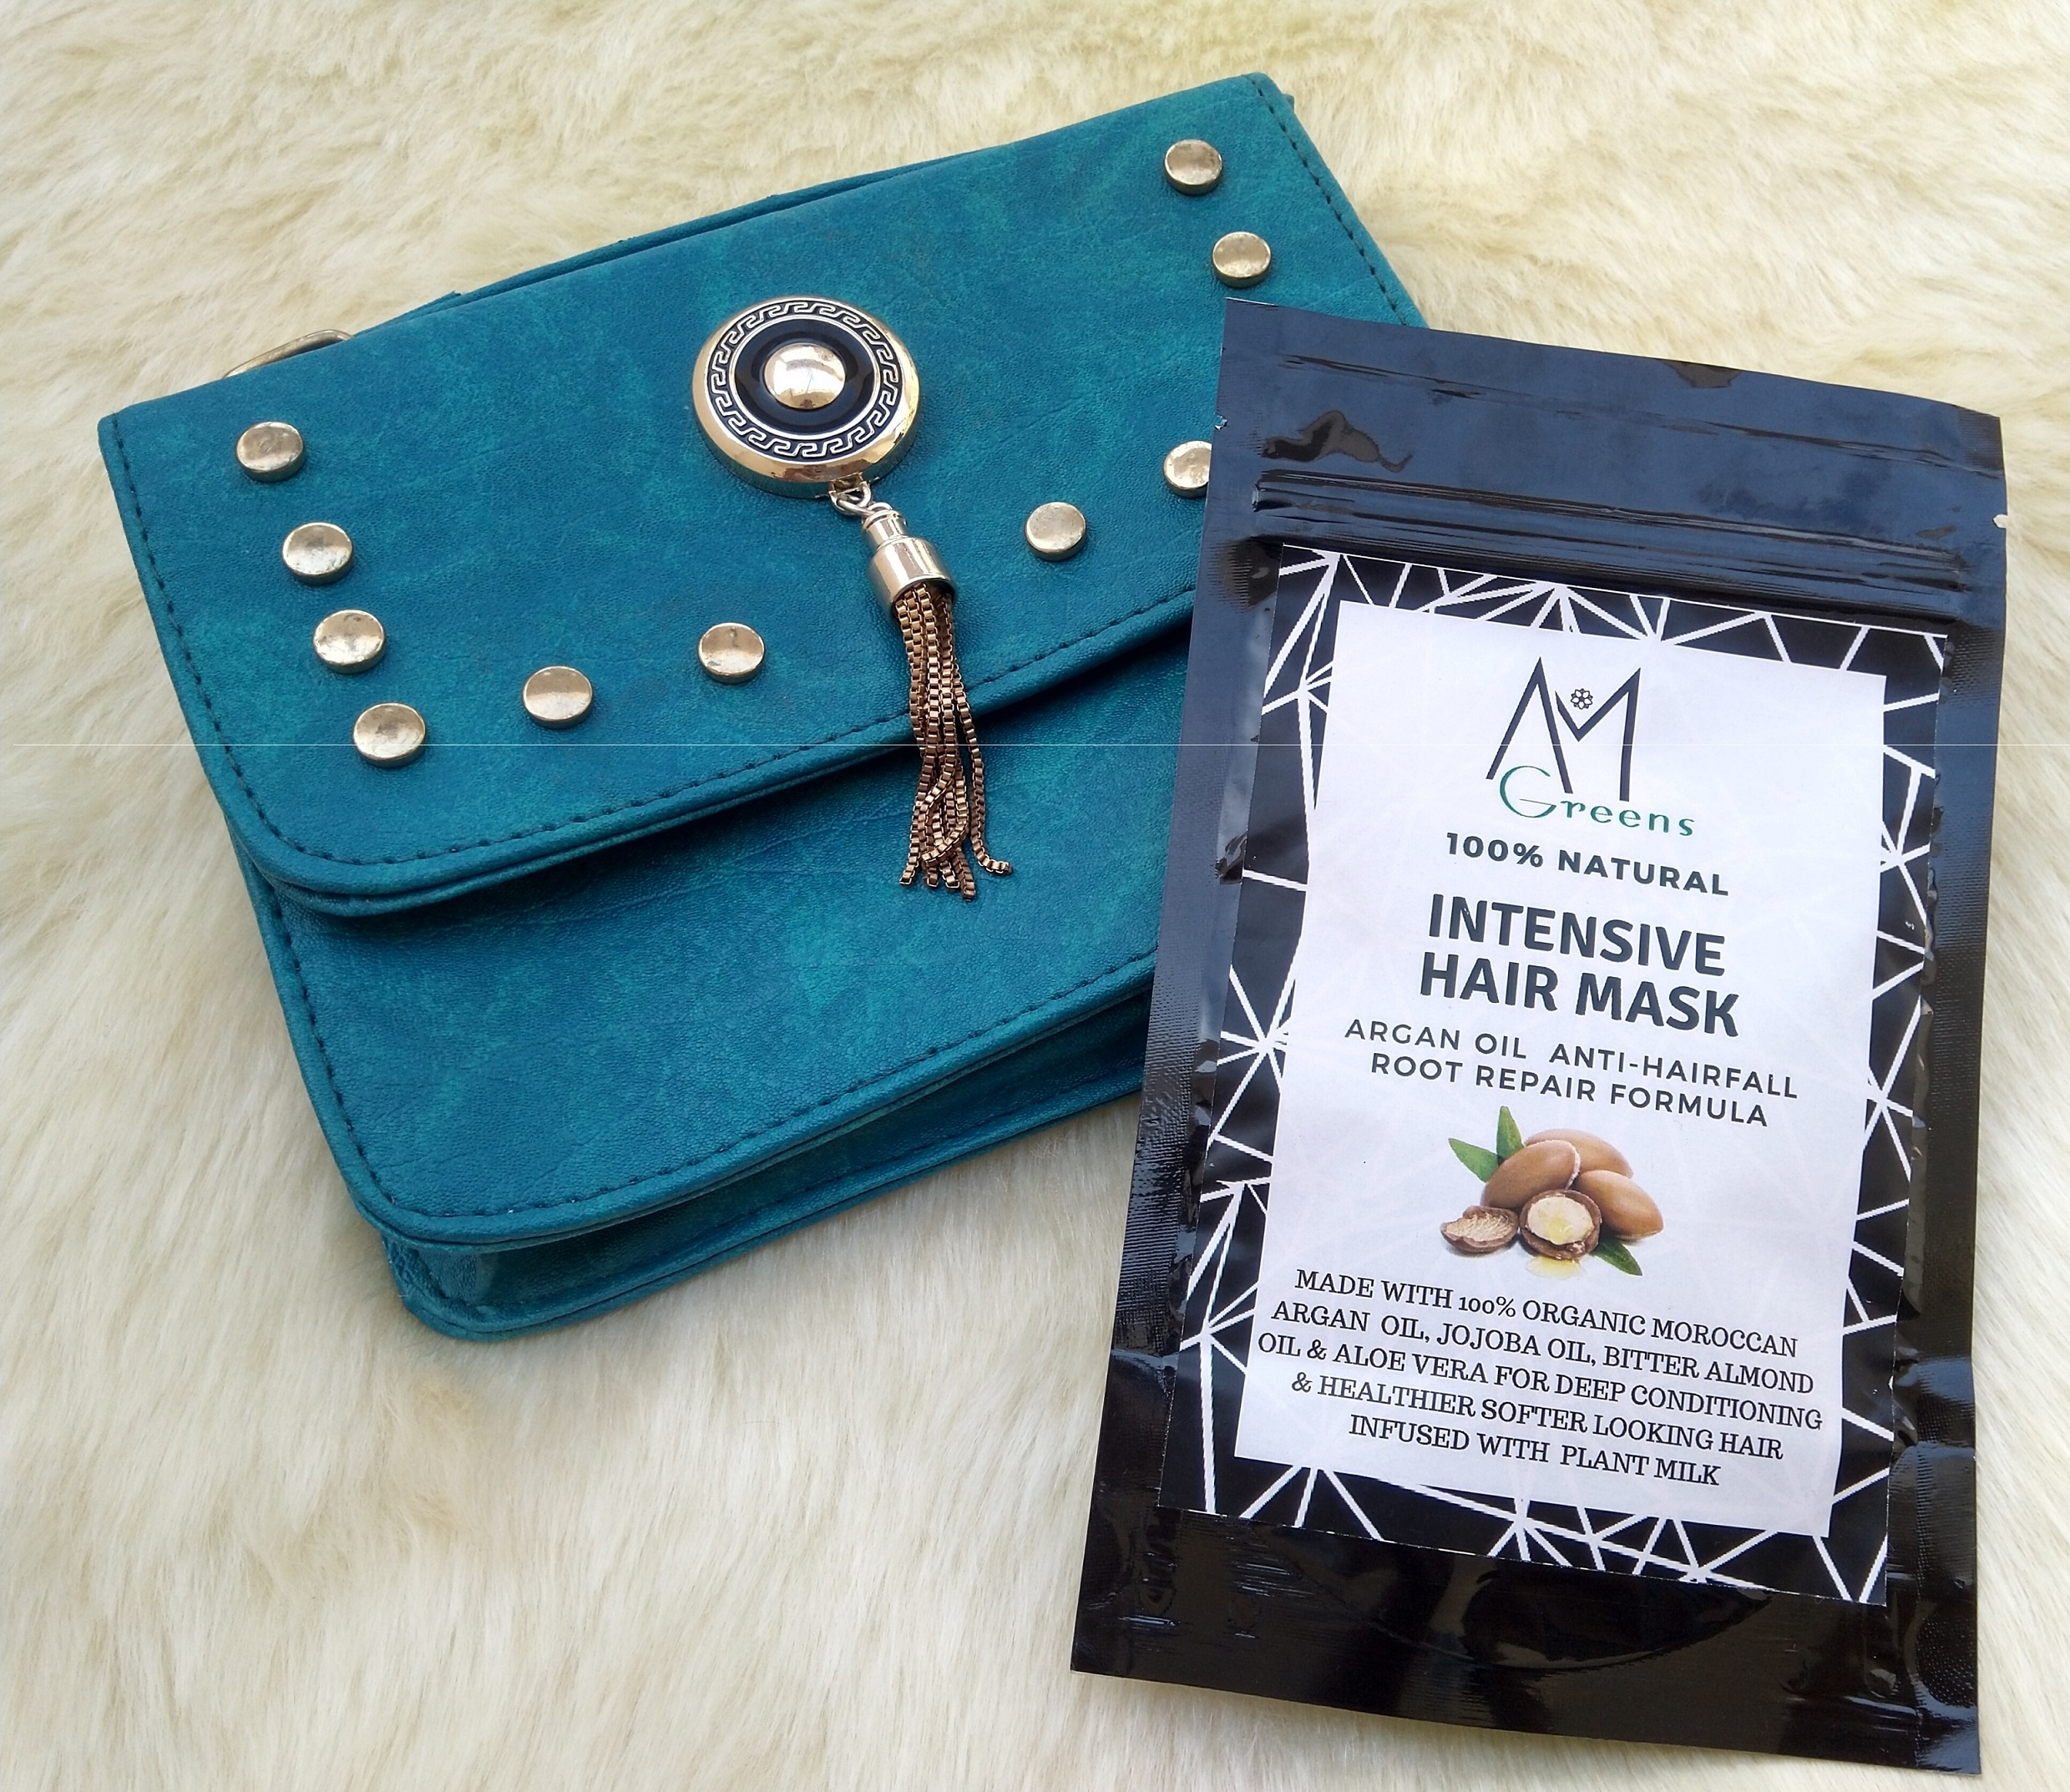 AM Greens Intensive Hair Mask (Hair Fall & Root Repair Formula) Review